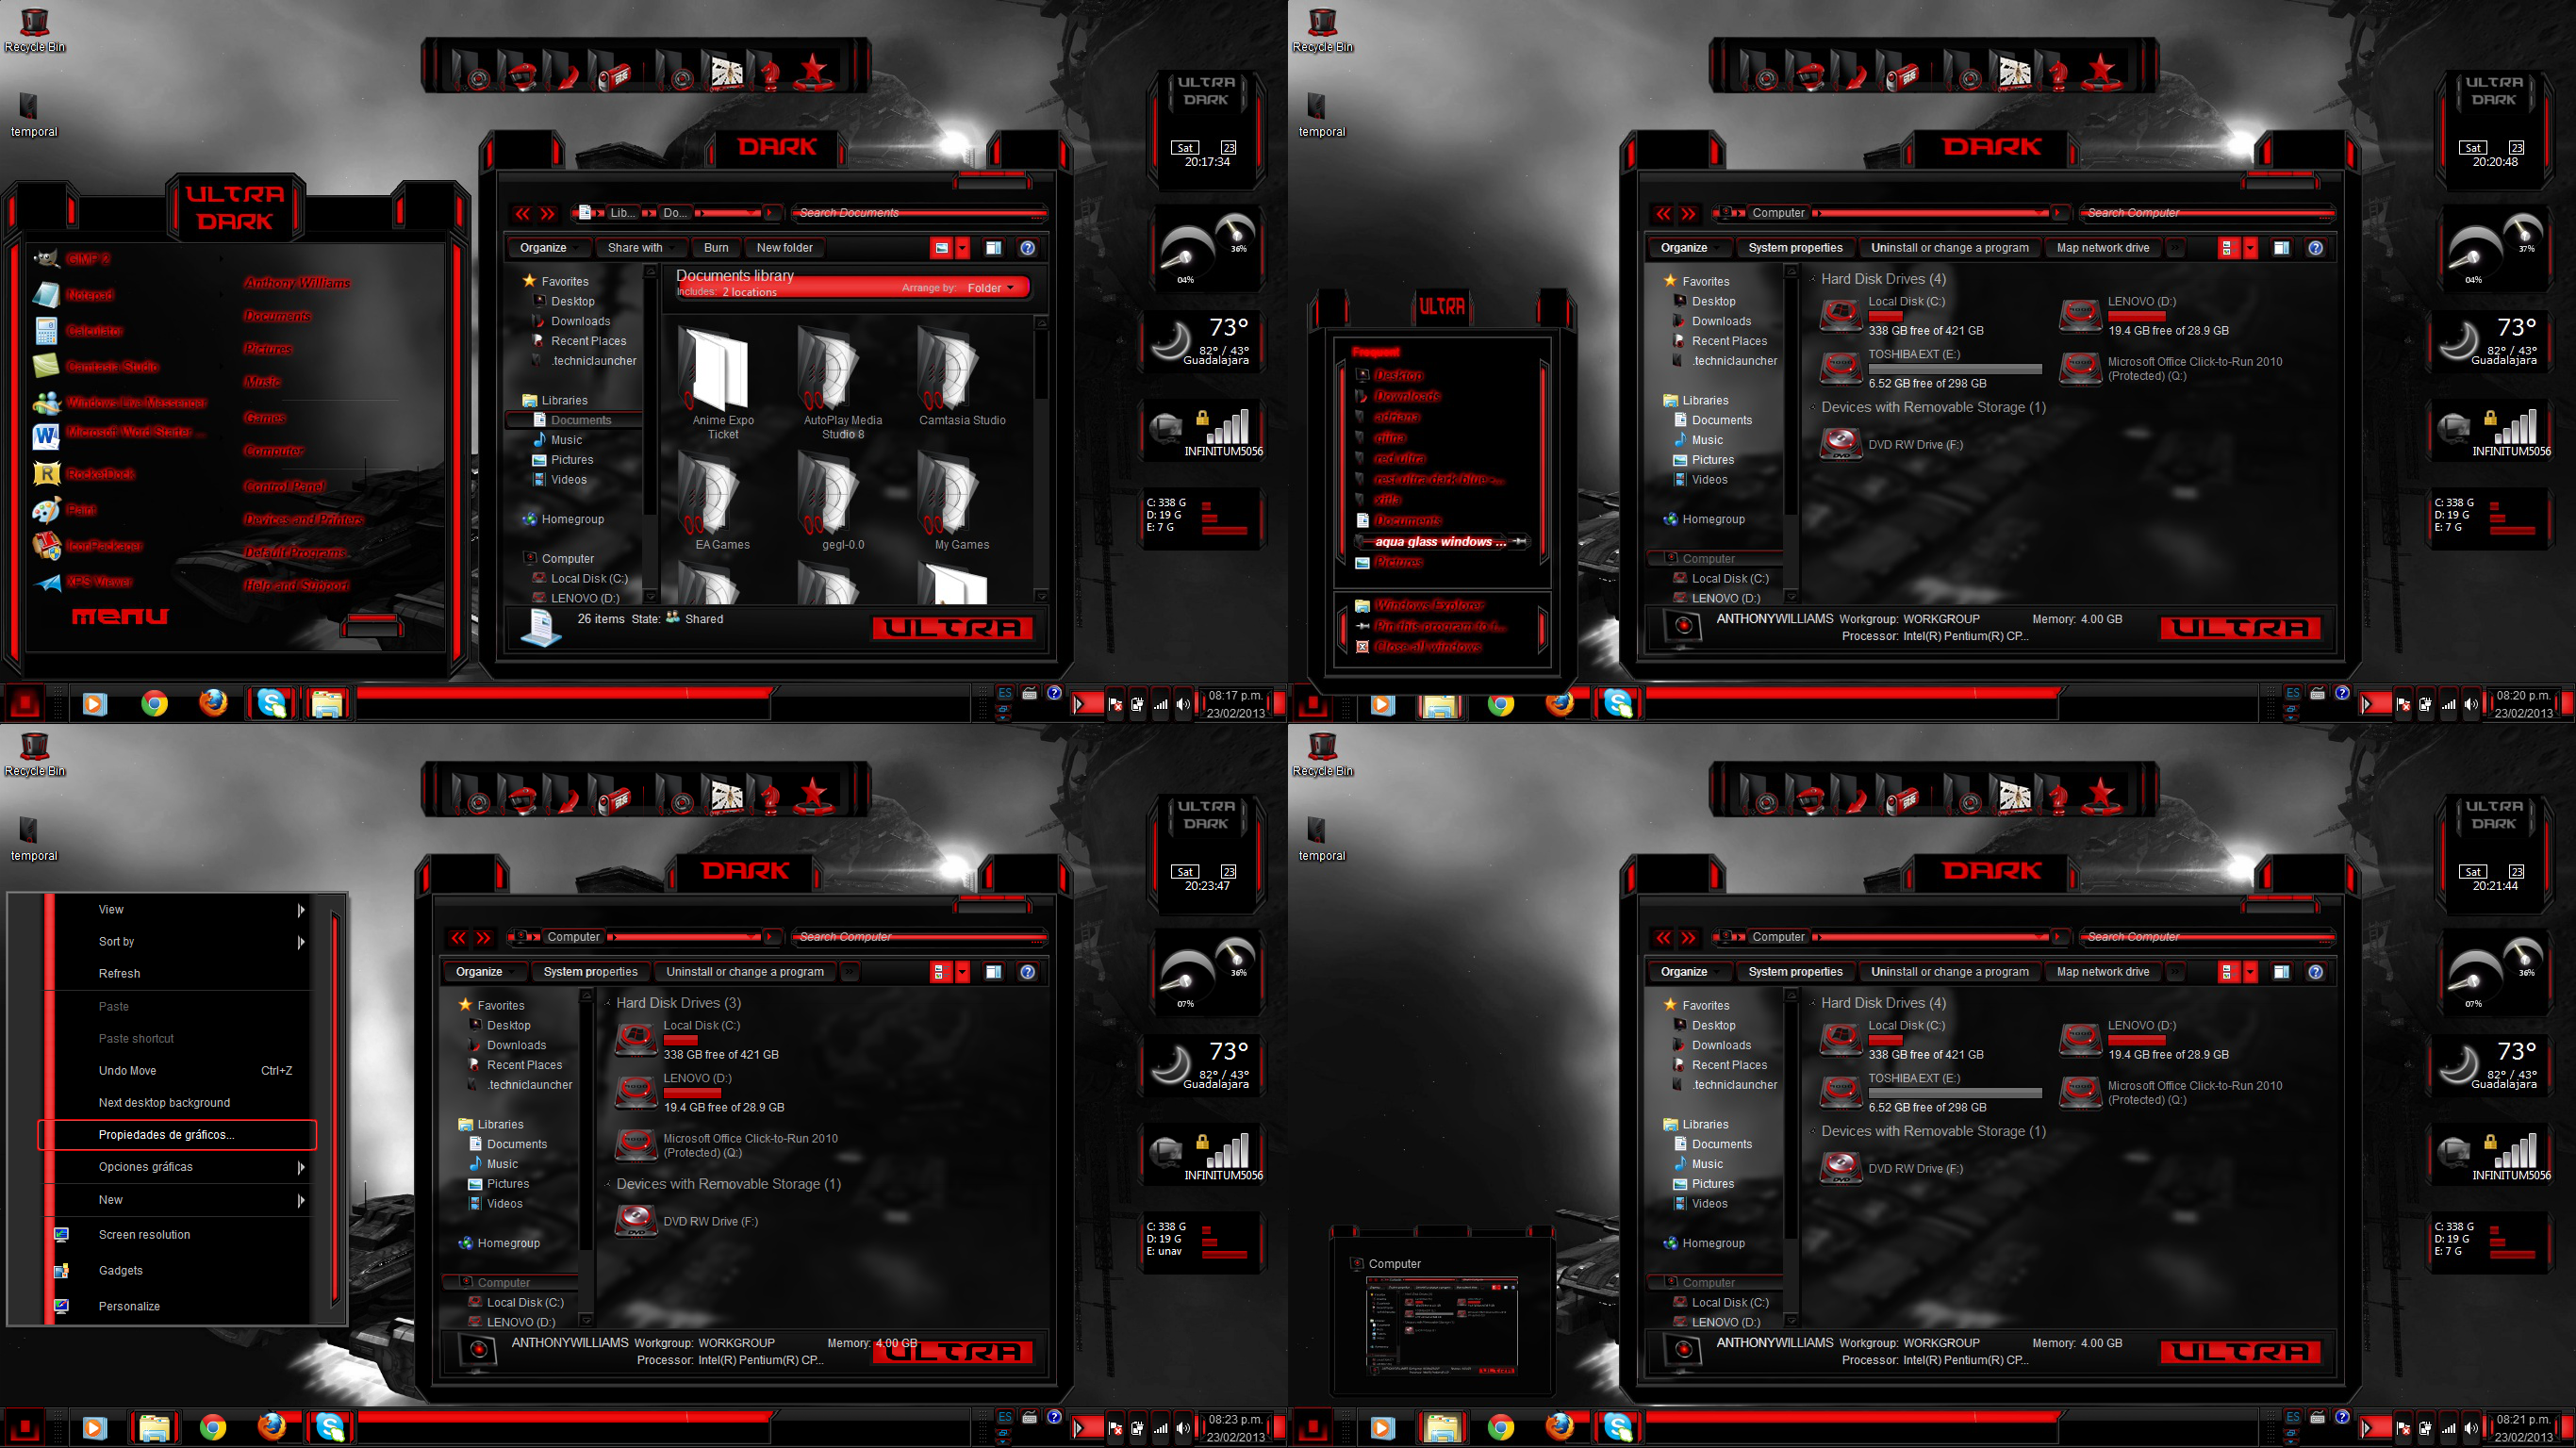 Agenda Free Download For Windows 7 Themes Black